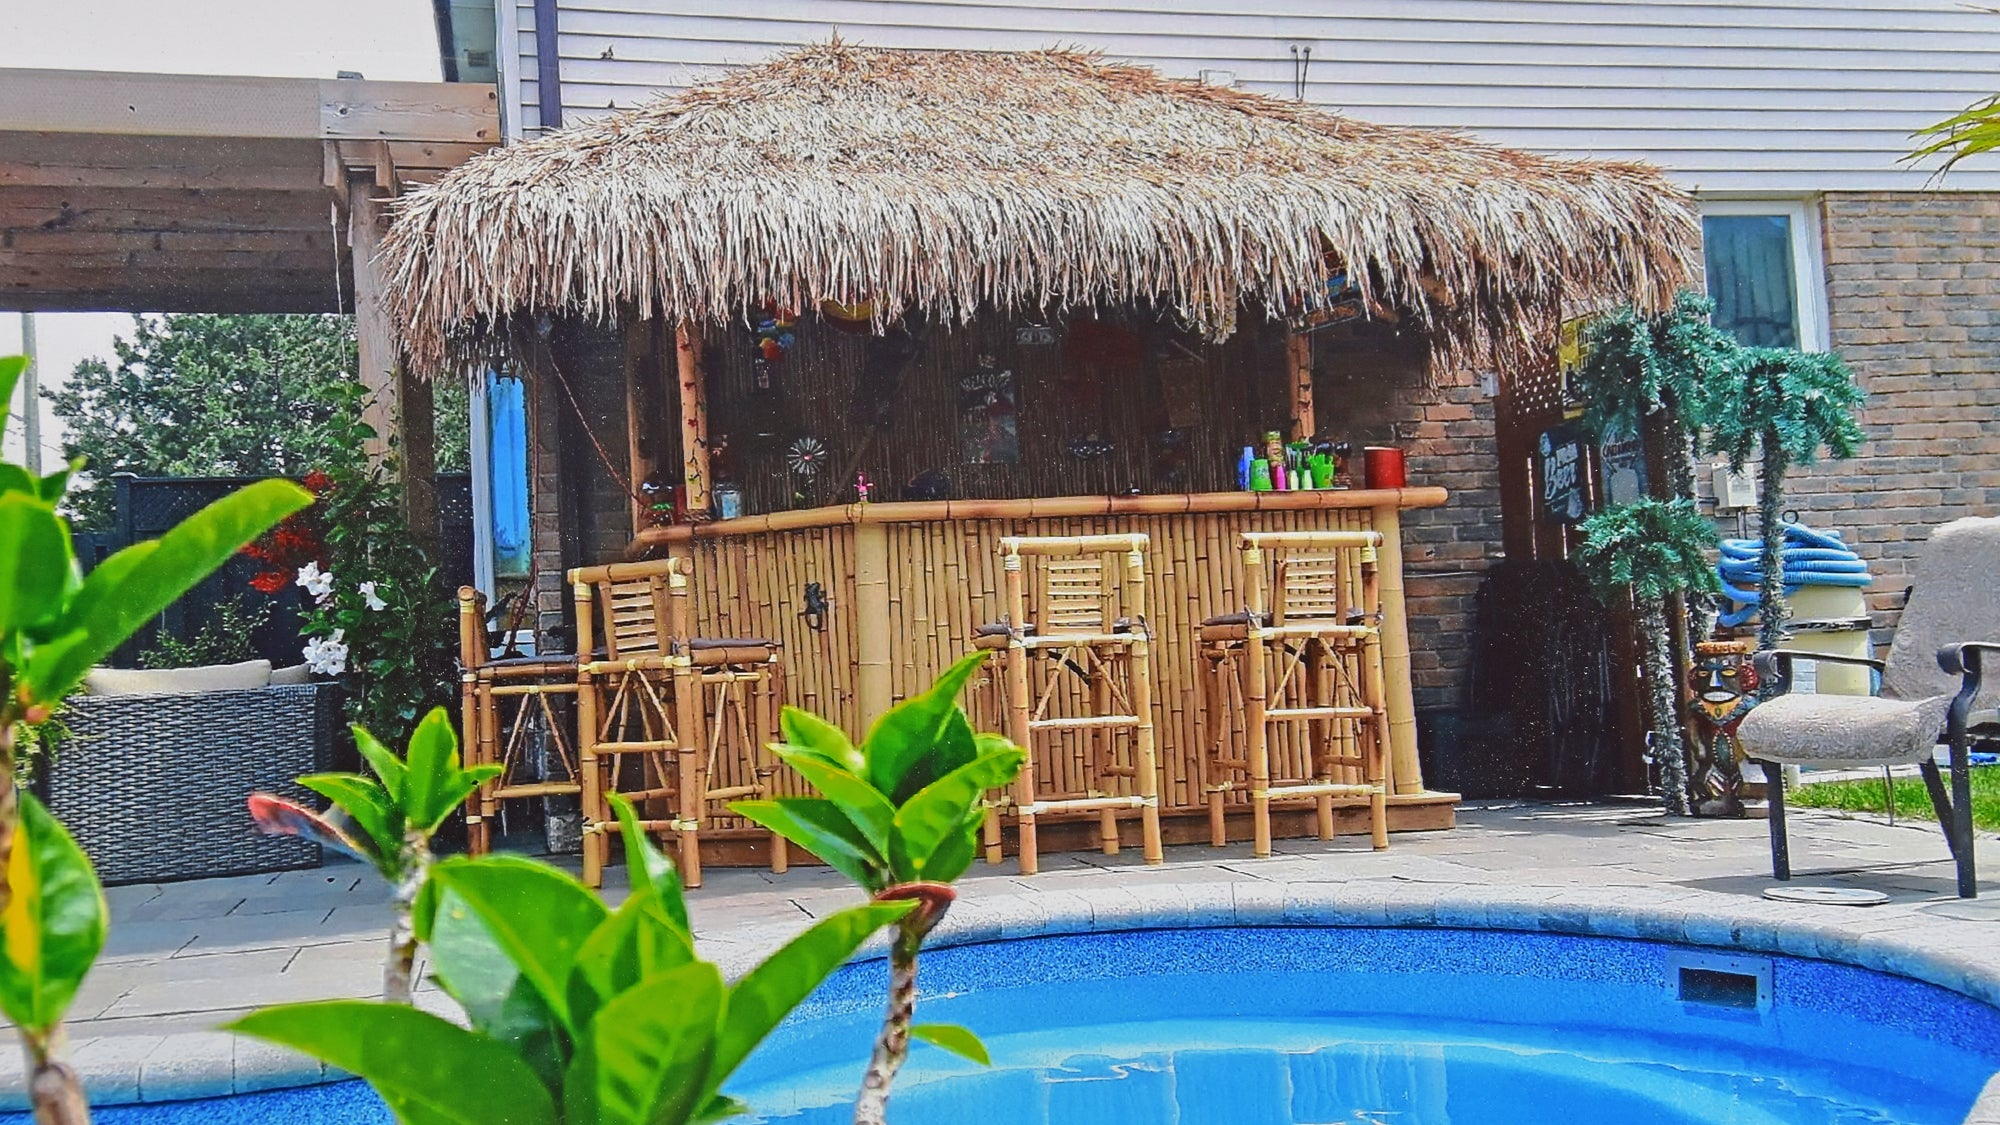 Mexican Palm Leaf Thatch Roofing - Bamboo Toronto Store